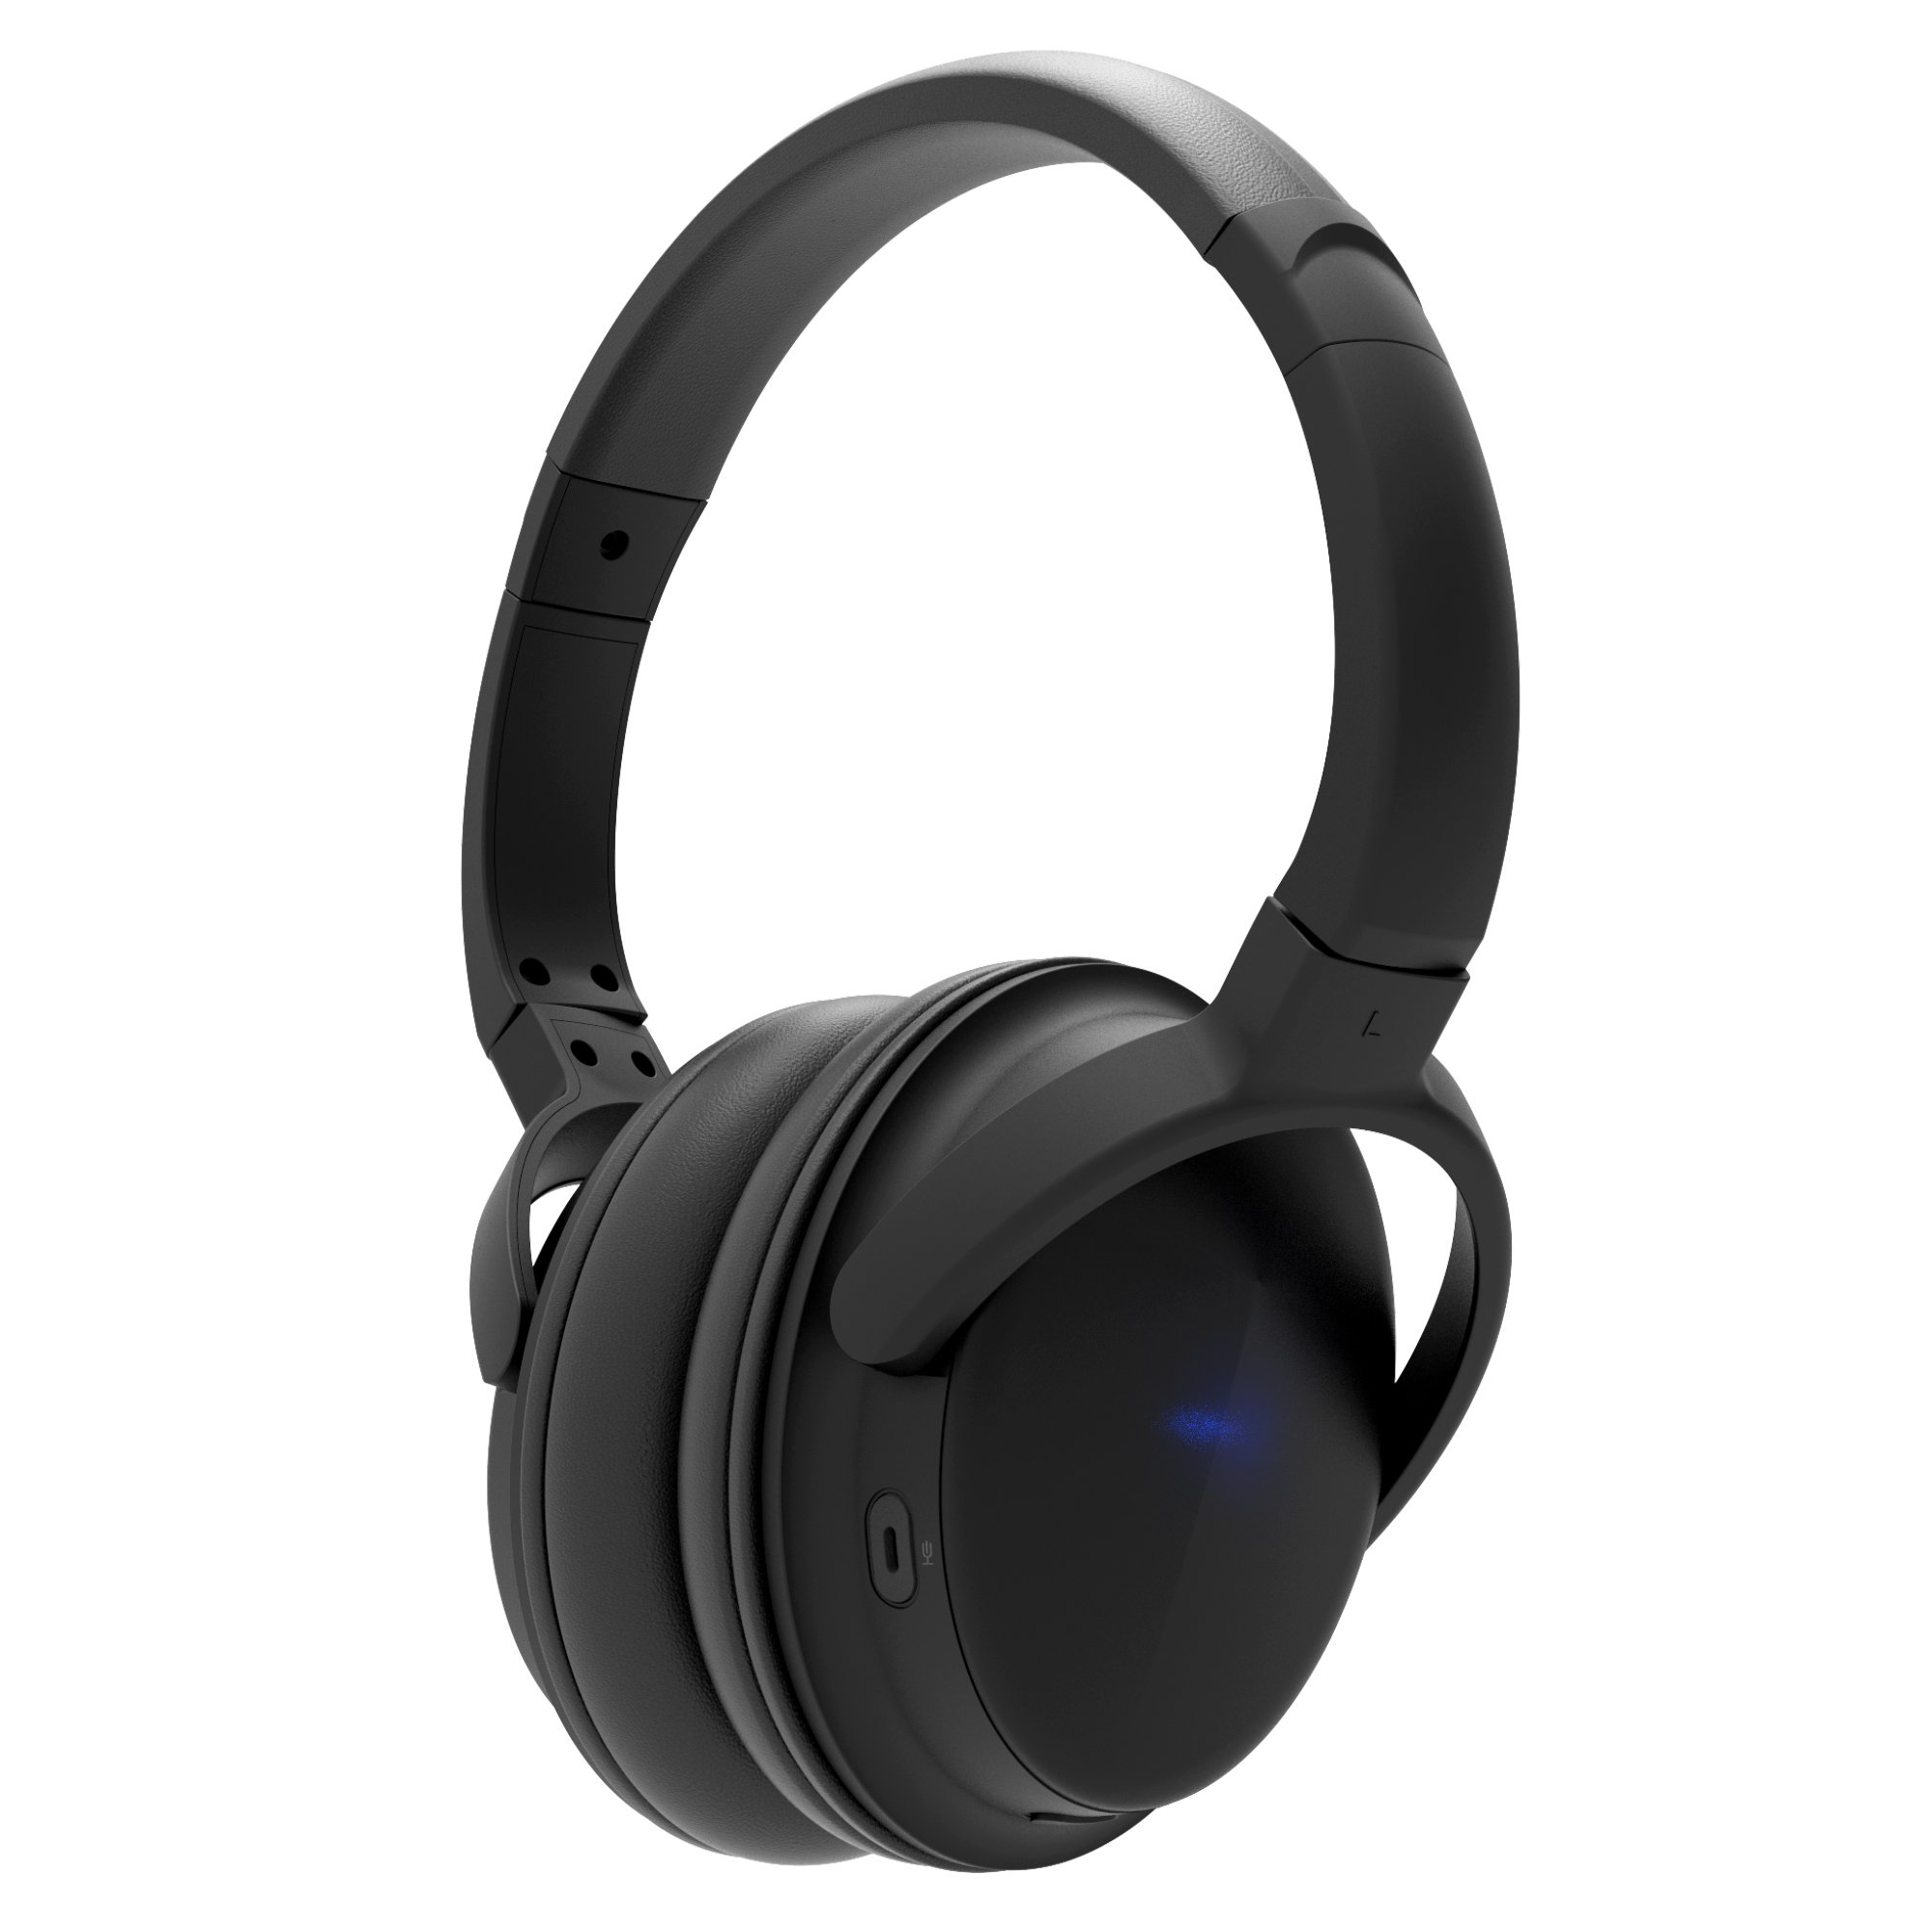 ATECH Wireless Headphones Over Ear Hi-Fi Stereo Lightweight Wire-Free Headset, 16-Hour Play, 40mm Driver for Deep Bass and Clear Mid Tones with Built-in Mic for Smartphones, Laptops, and TV (Black)